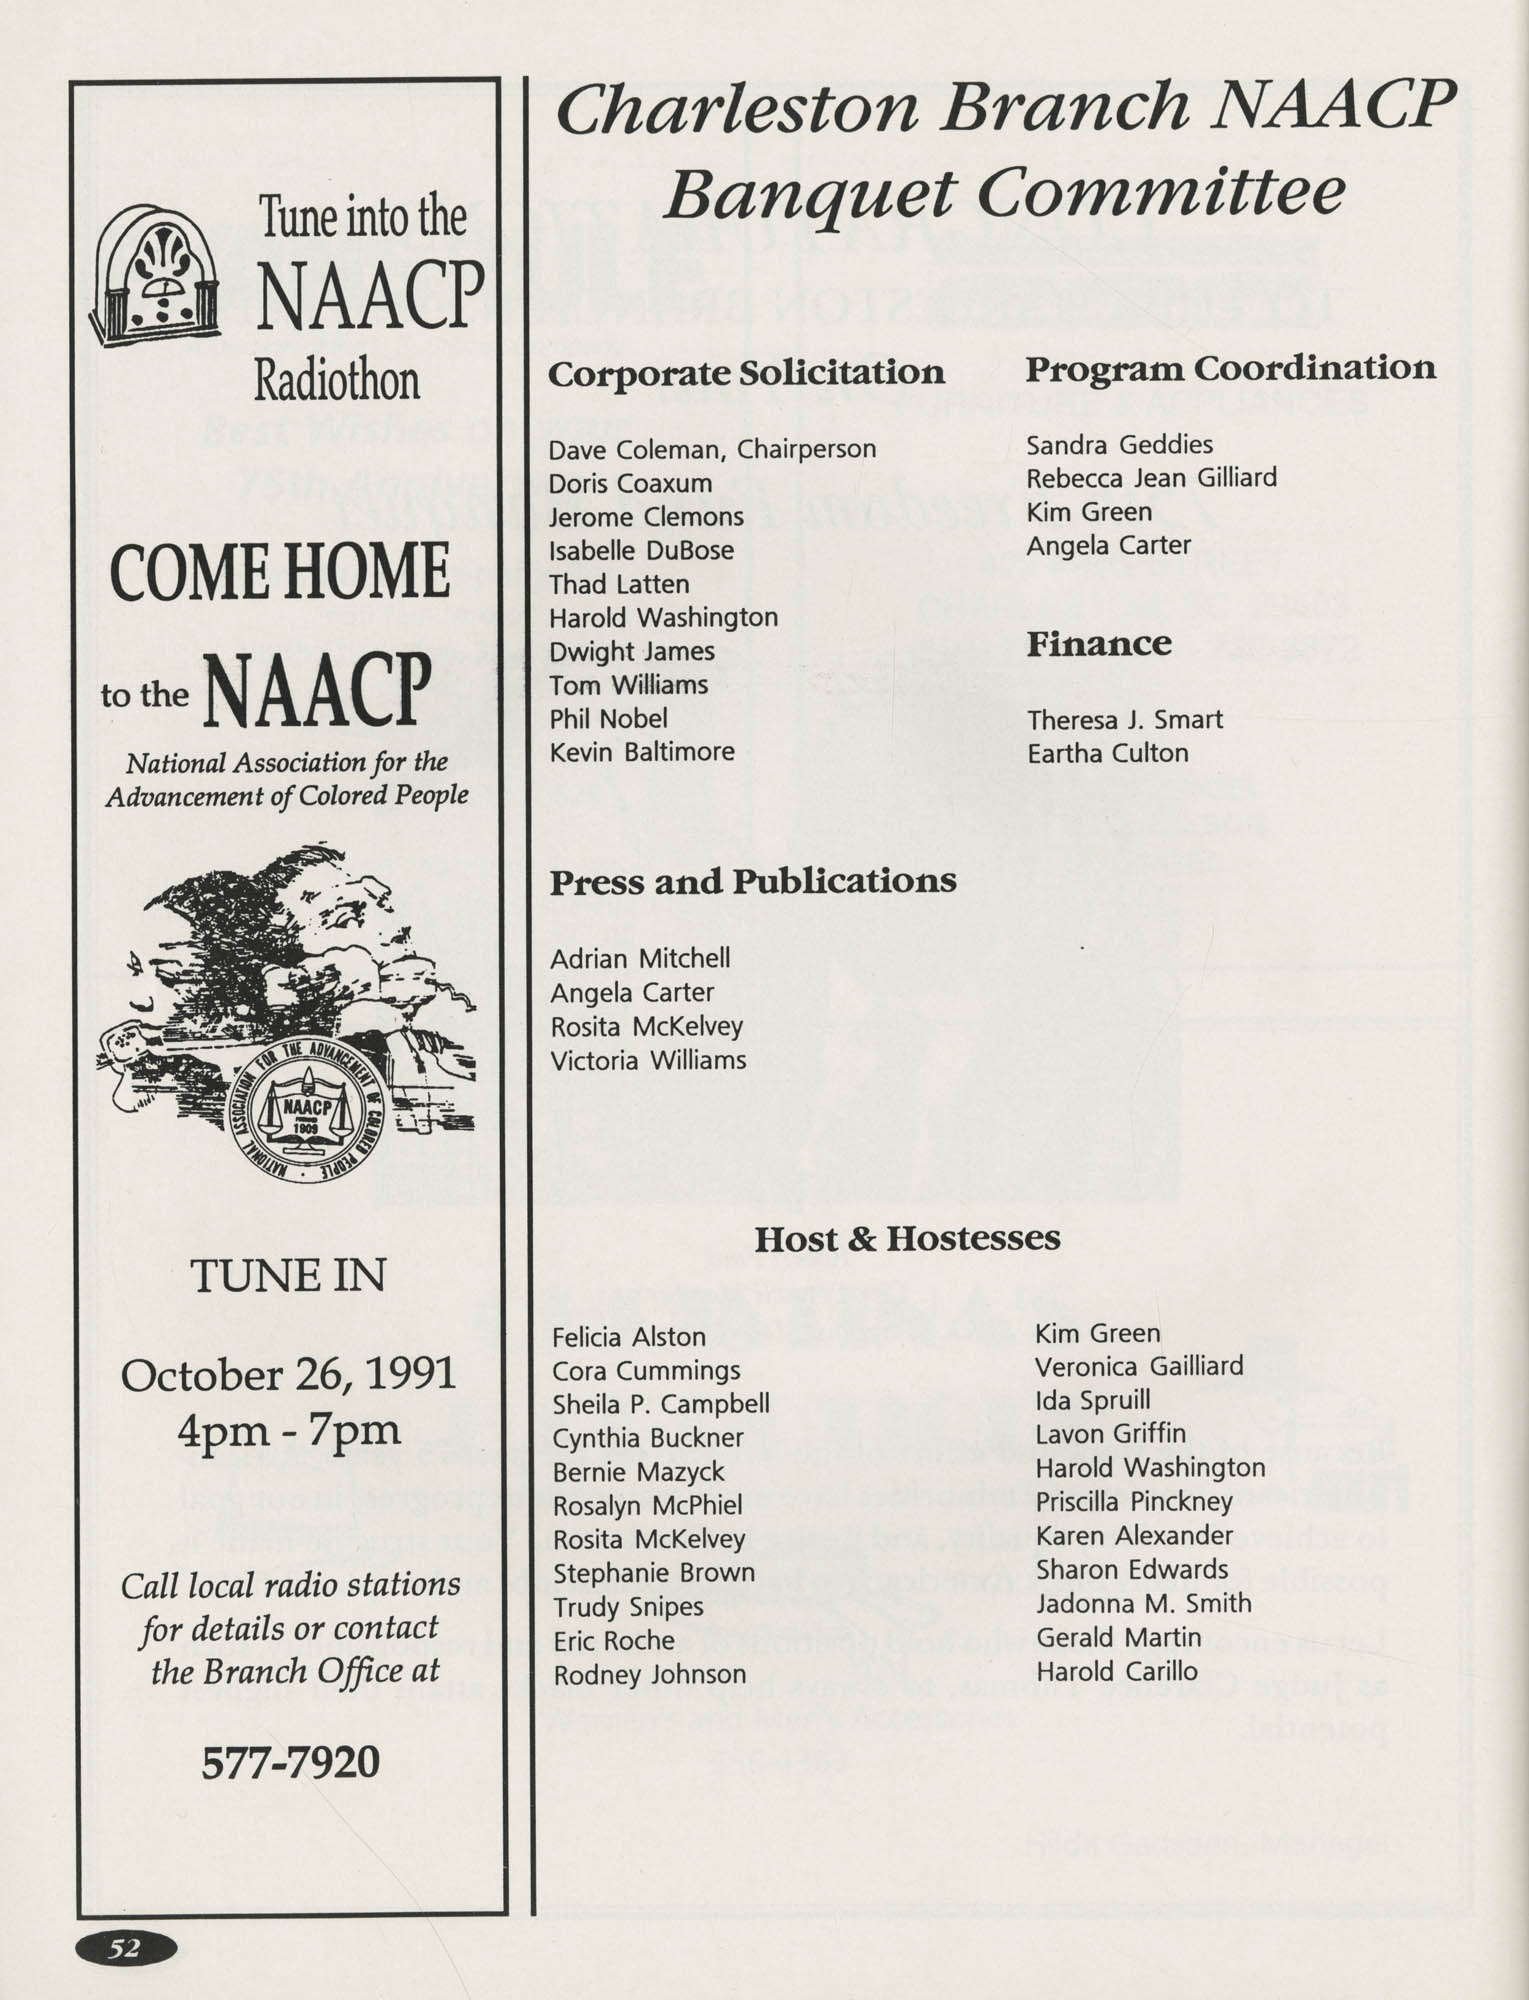 1991 Freedom Fund Magazine, Charleston Branch of the NAACP, Page 52